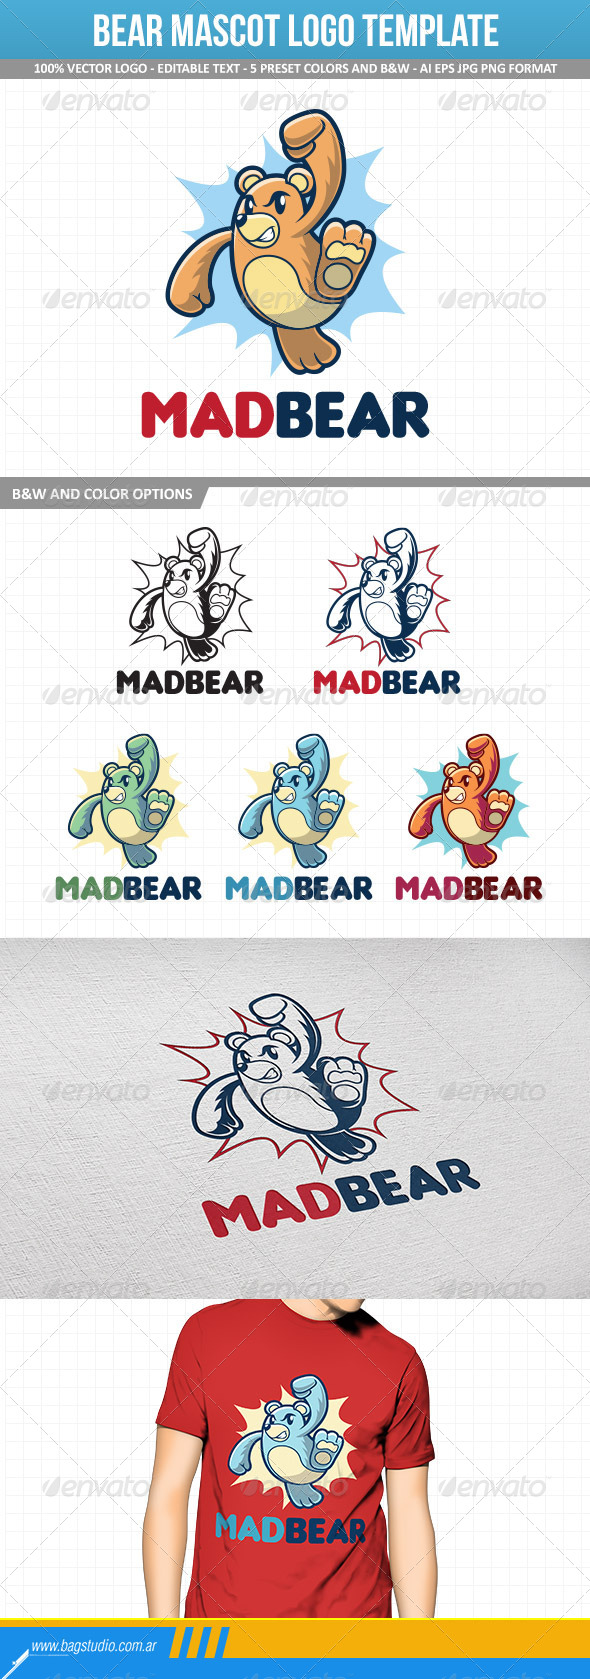 GraphicRiver Bear Mascot Logo Template 7315540